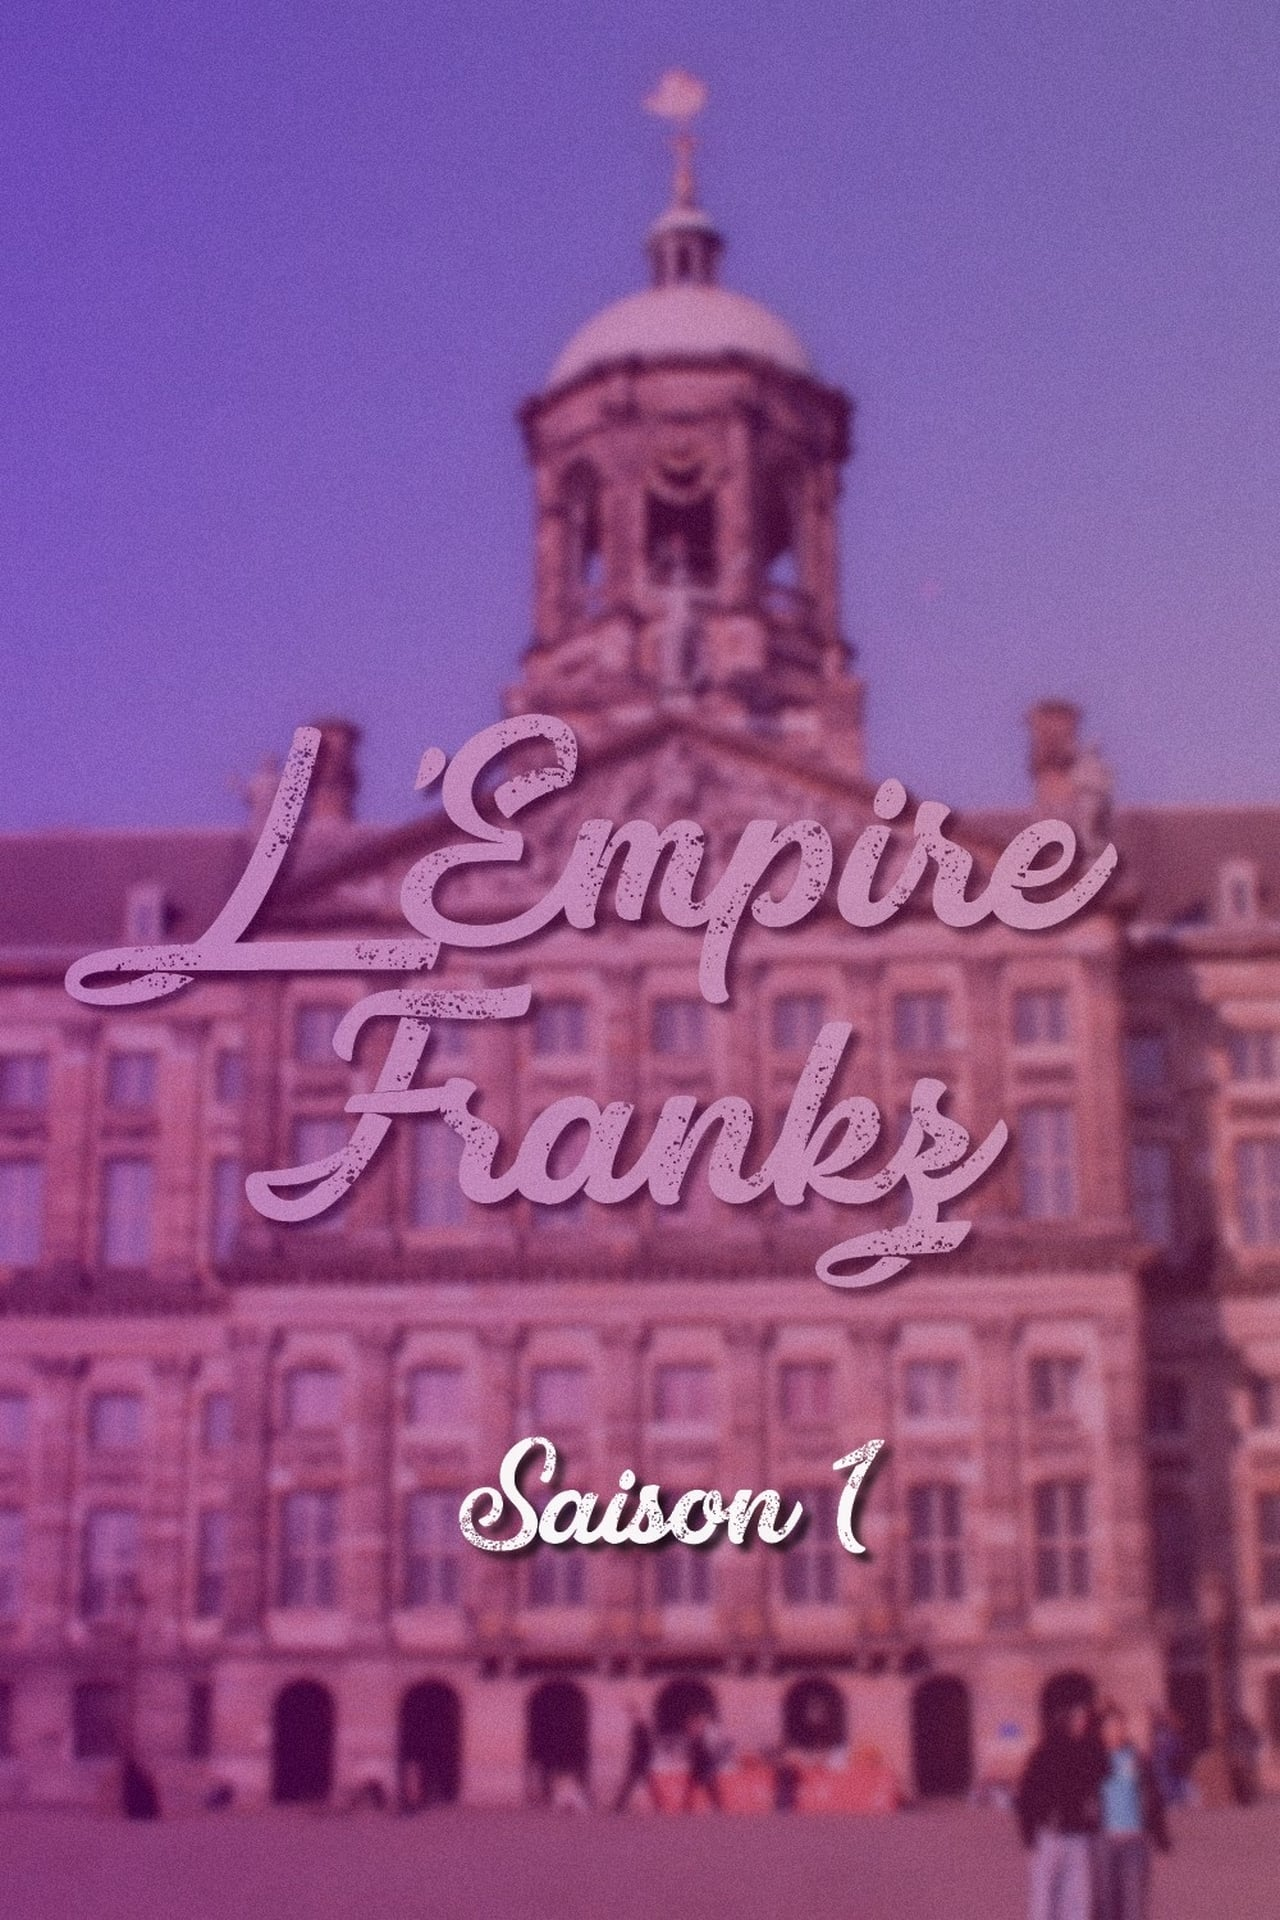 Putlocker L'empire Frankz Season 1 (2009)